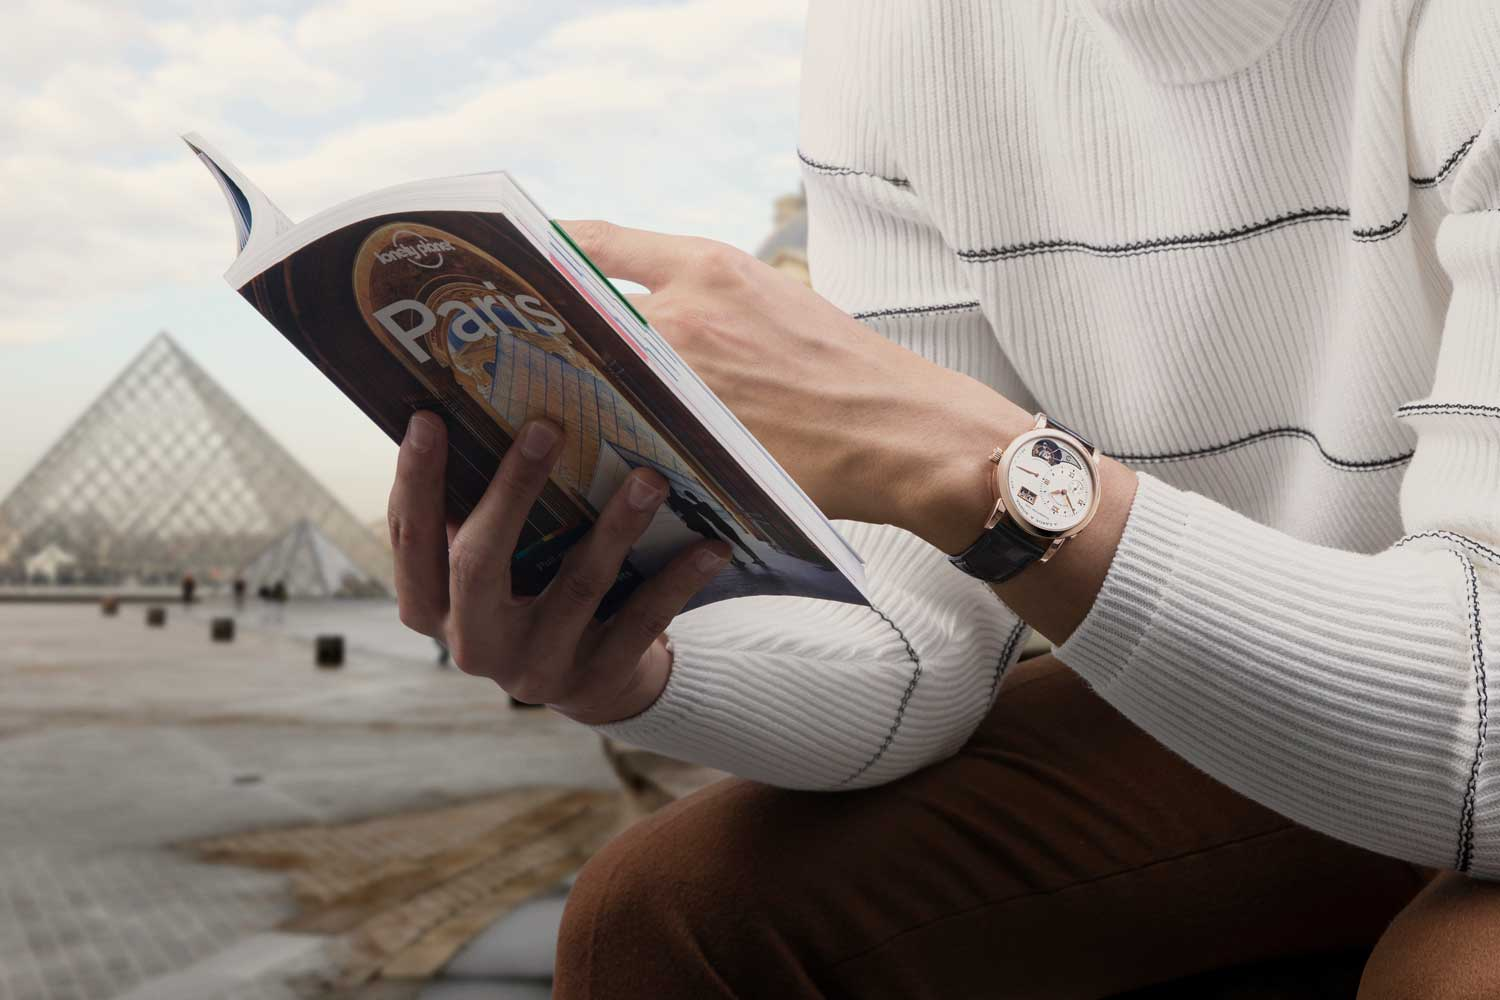 The Lange 1 Tourbillon (reference 704.032 in pink gold) on the Courtyard of the Louvre Museum (Image © Revolution)